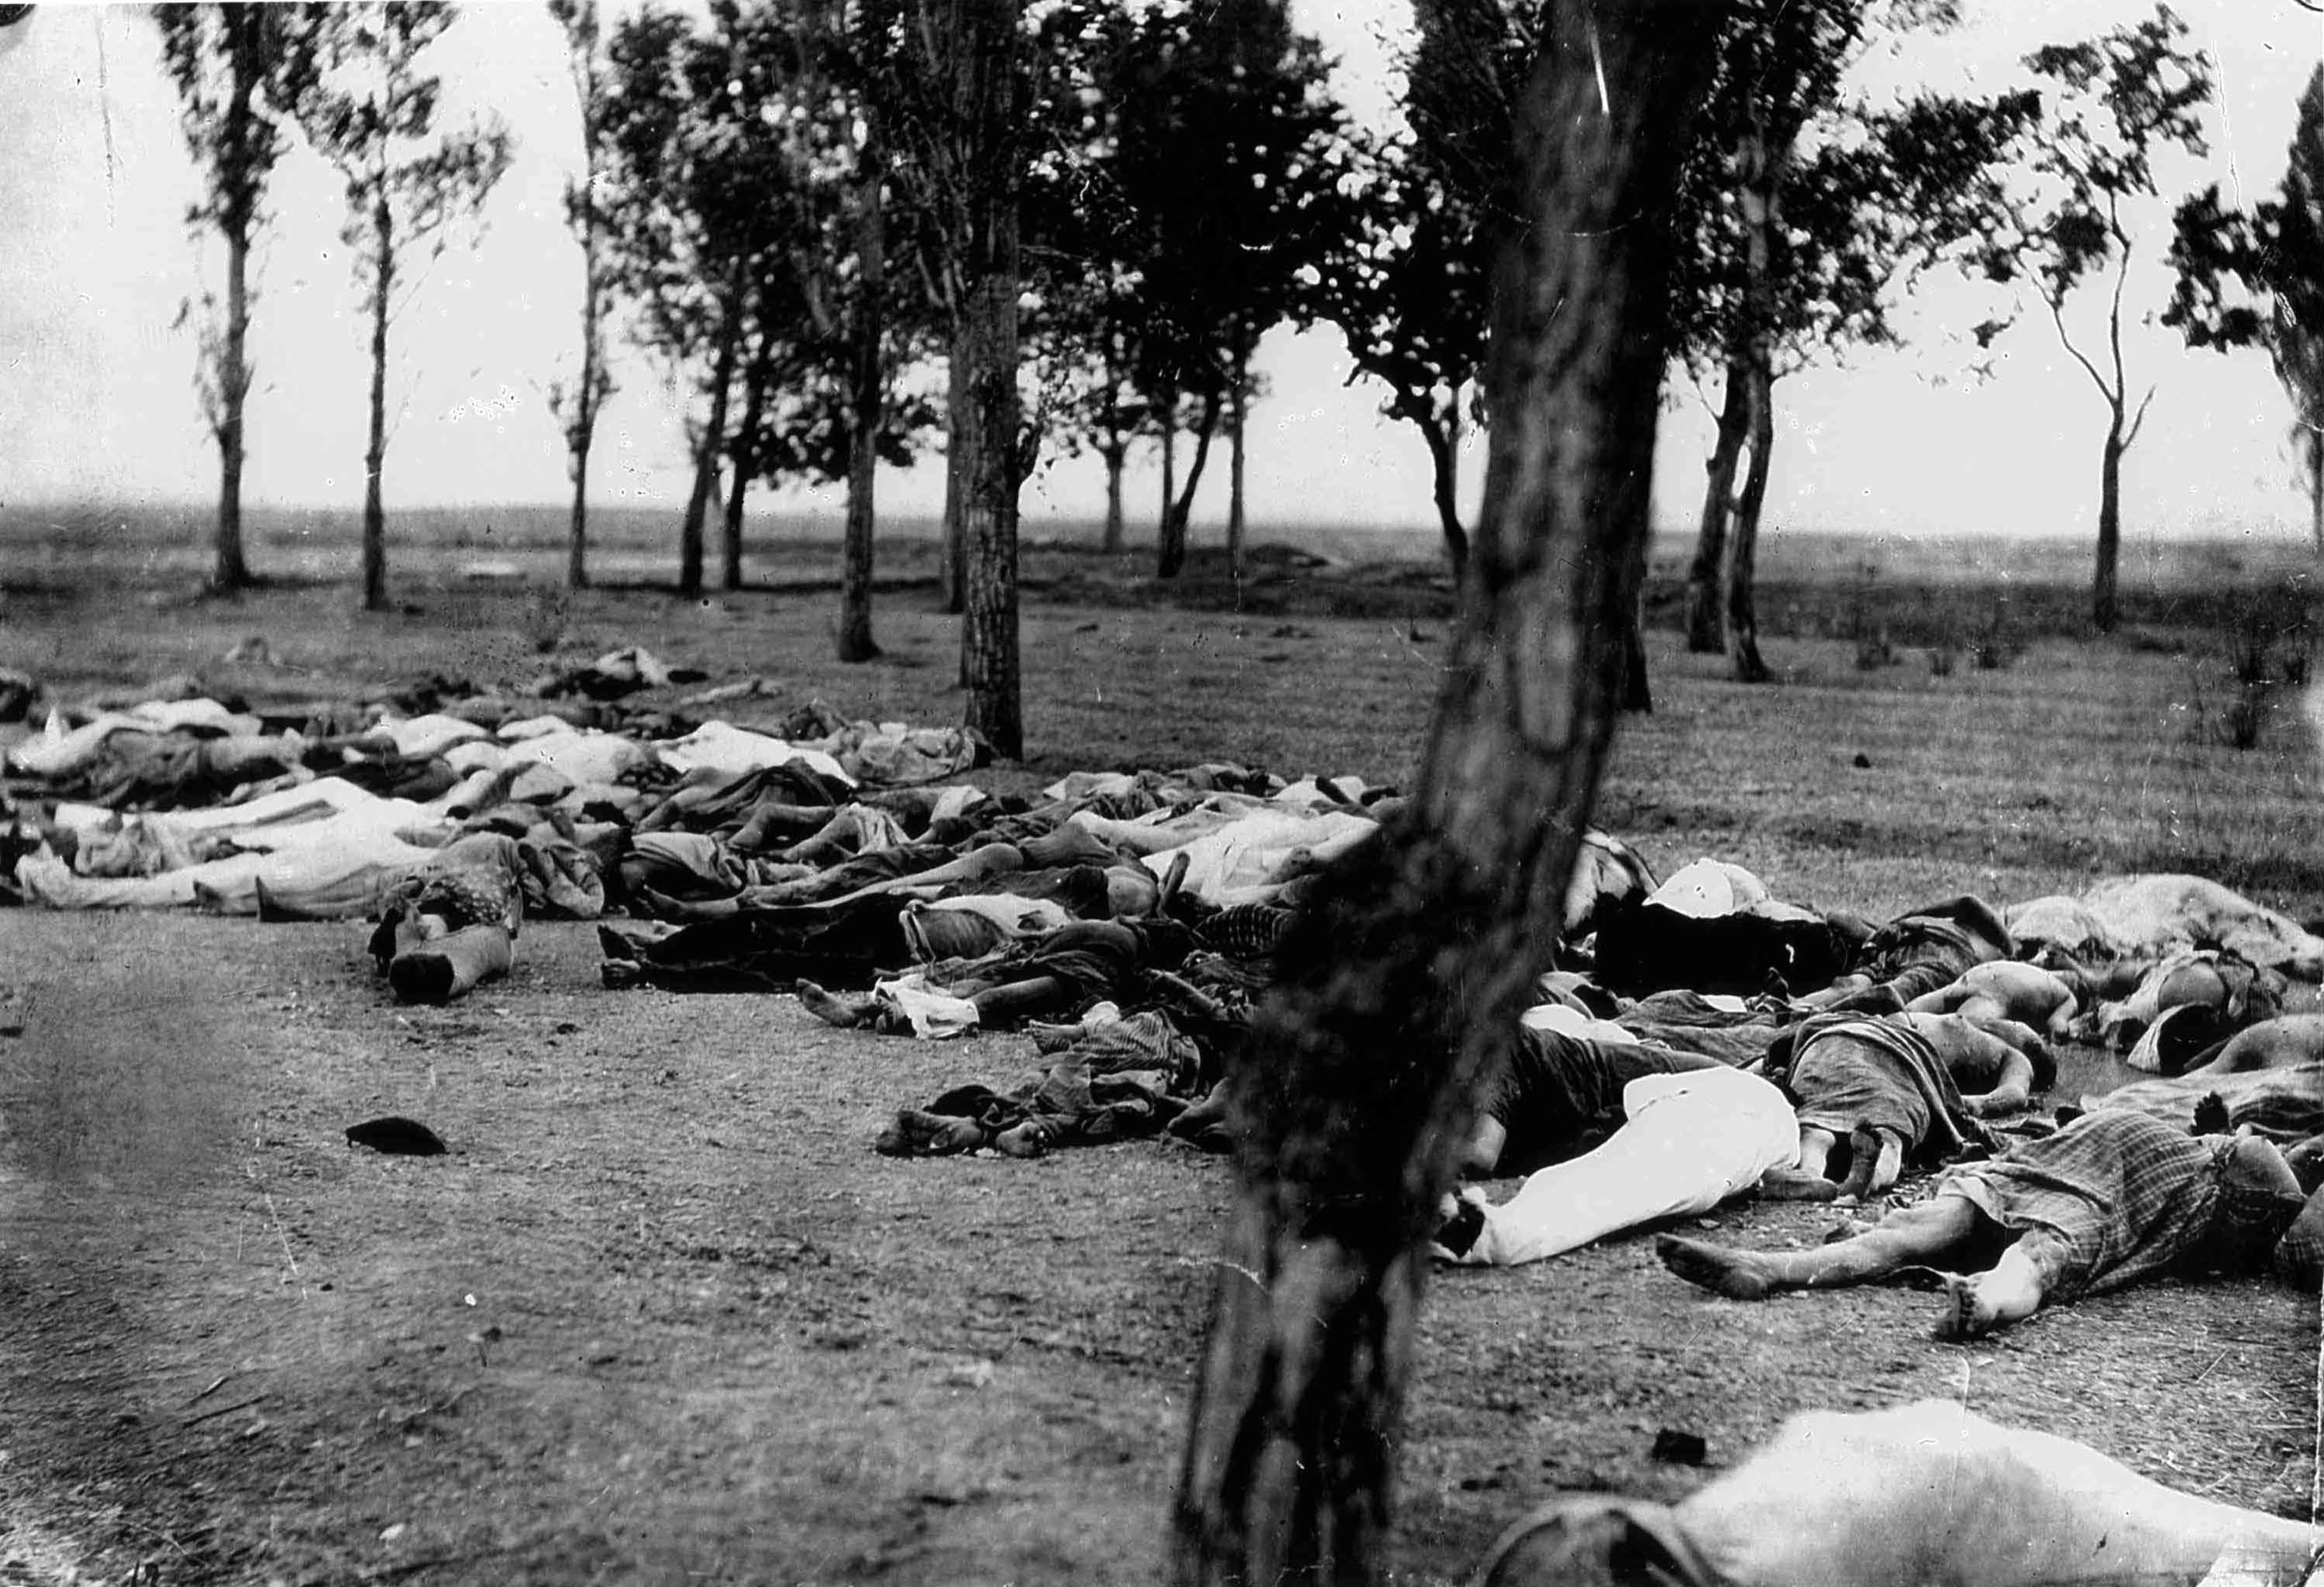 The Armenian dead, date uncertain.